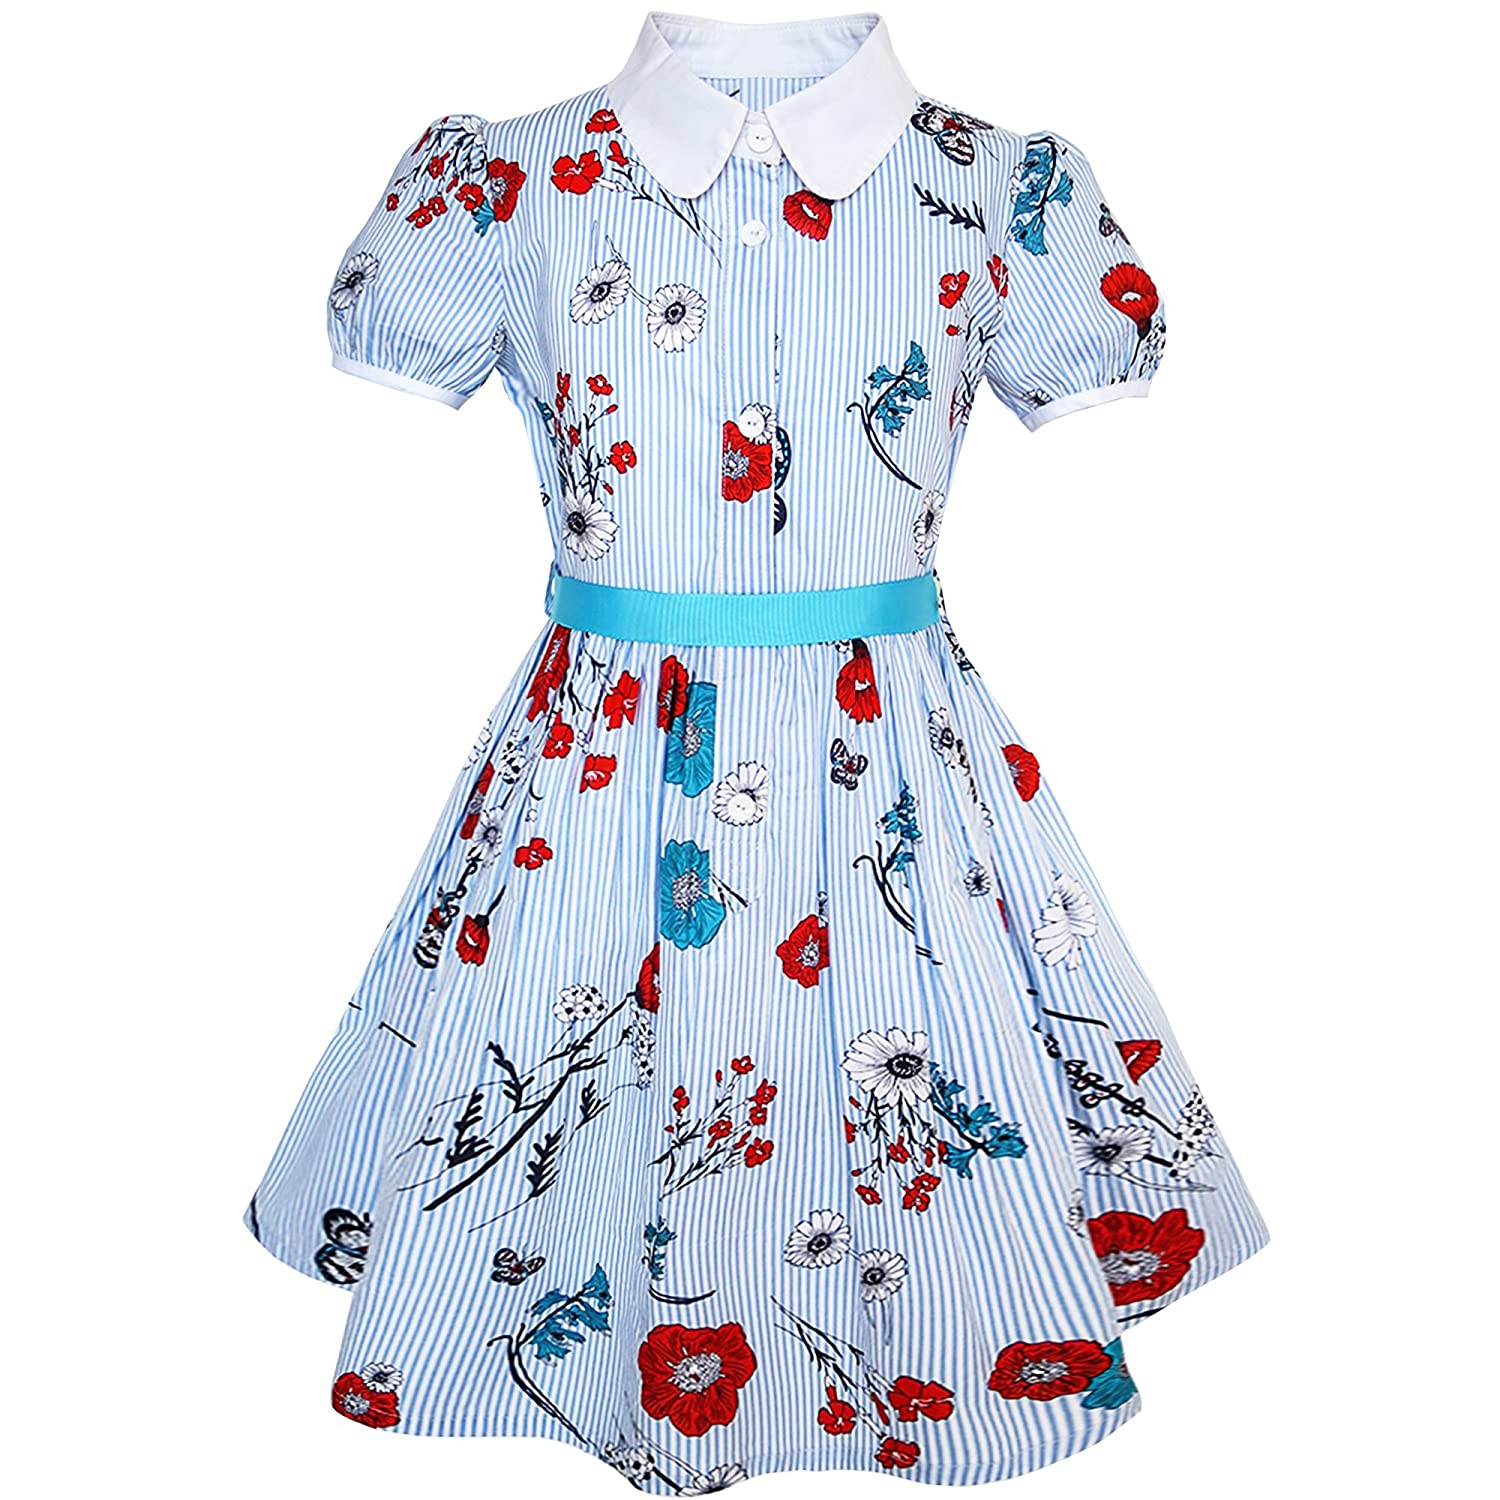 Sunny Fashion Girls Dress School Blue Strip Butterfly Print Gingham Size 4-10